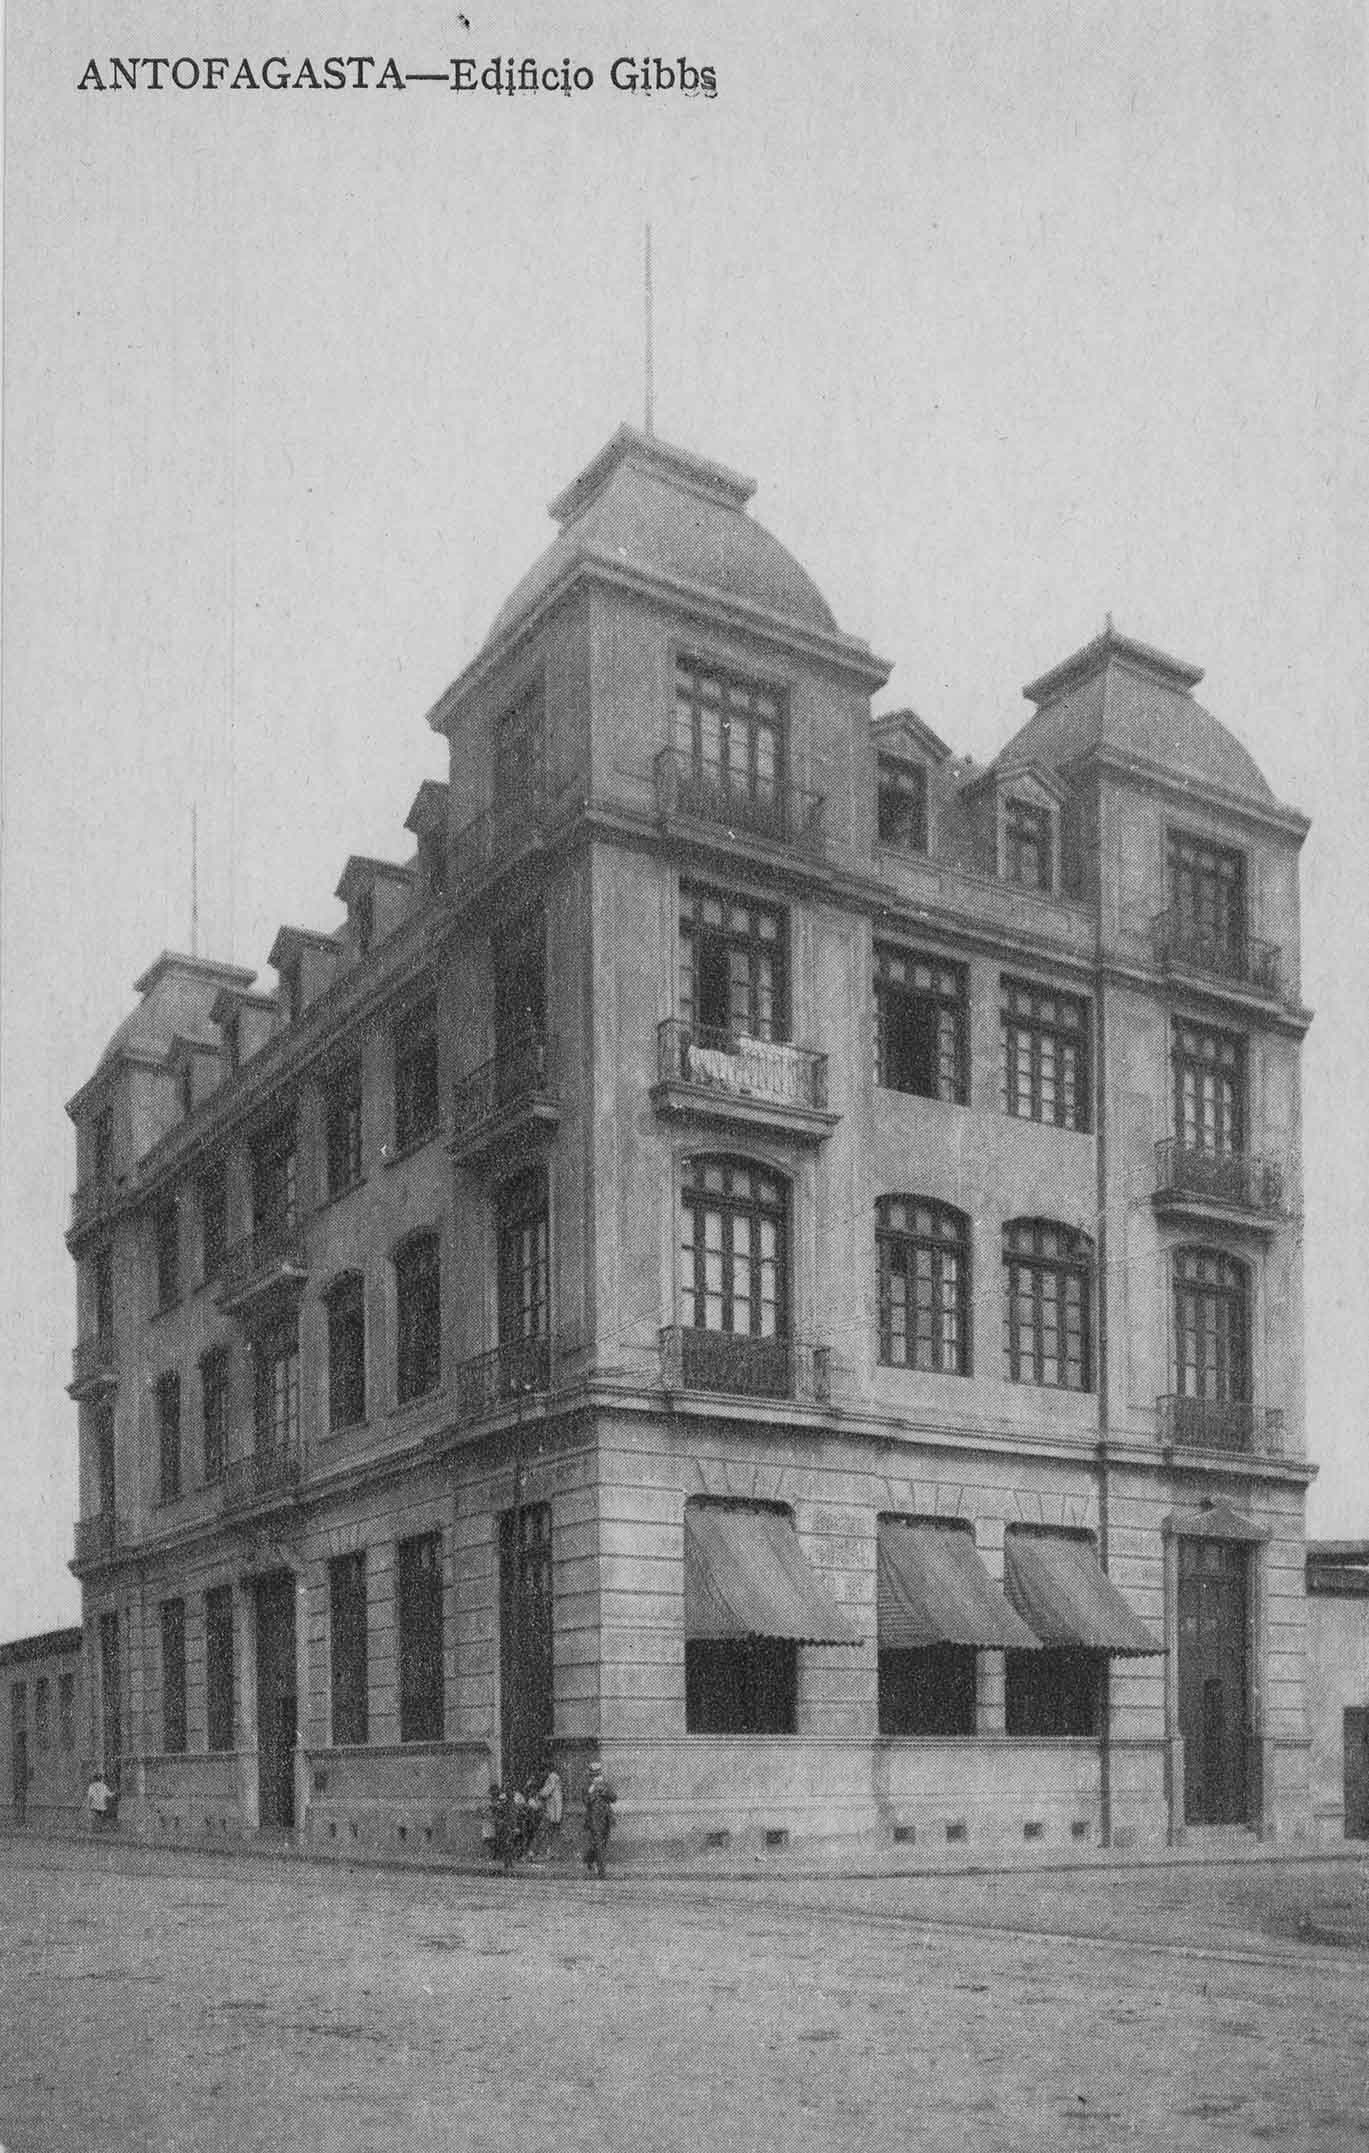 Enterreno - Fotos históricas de chile - fotos antiguas de Chile - Edificio Gibbs de Antofagasta ca. 1920